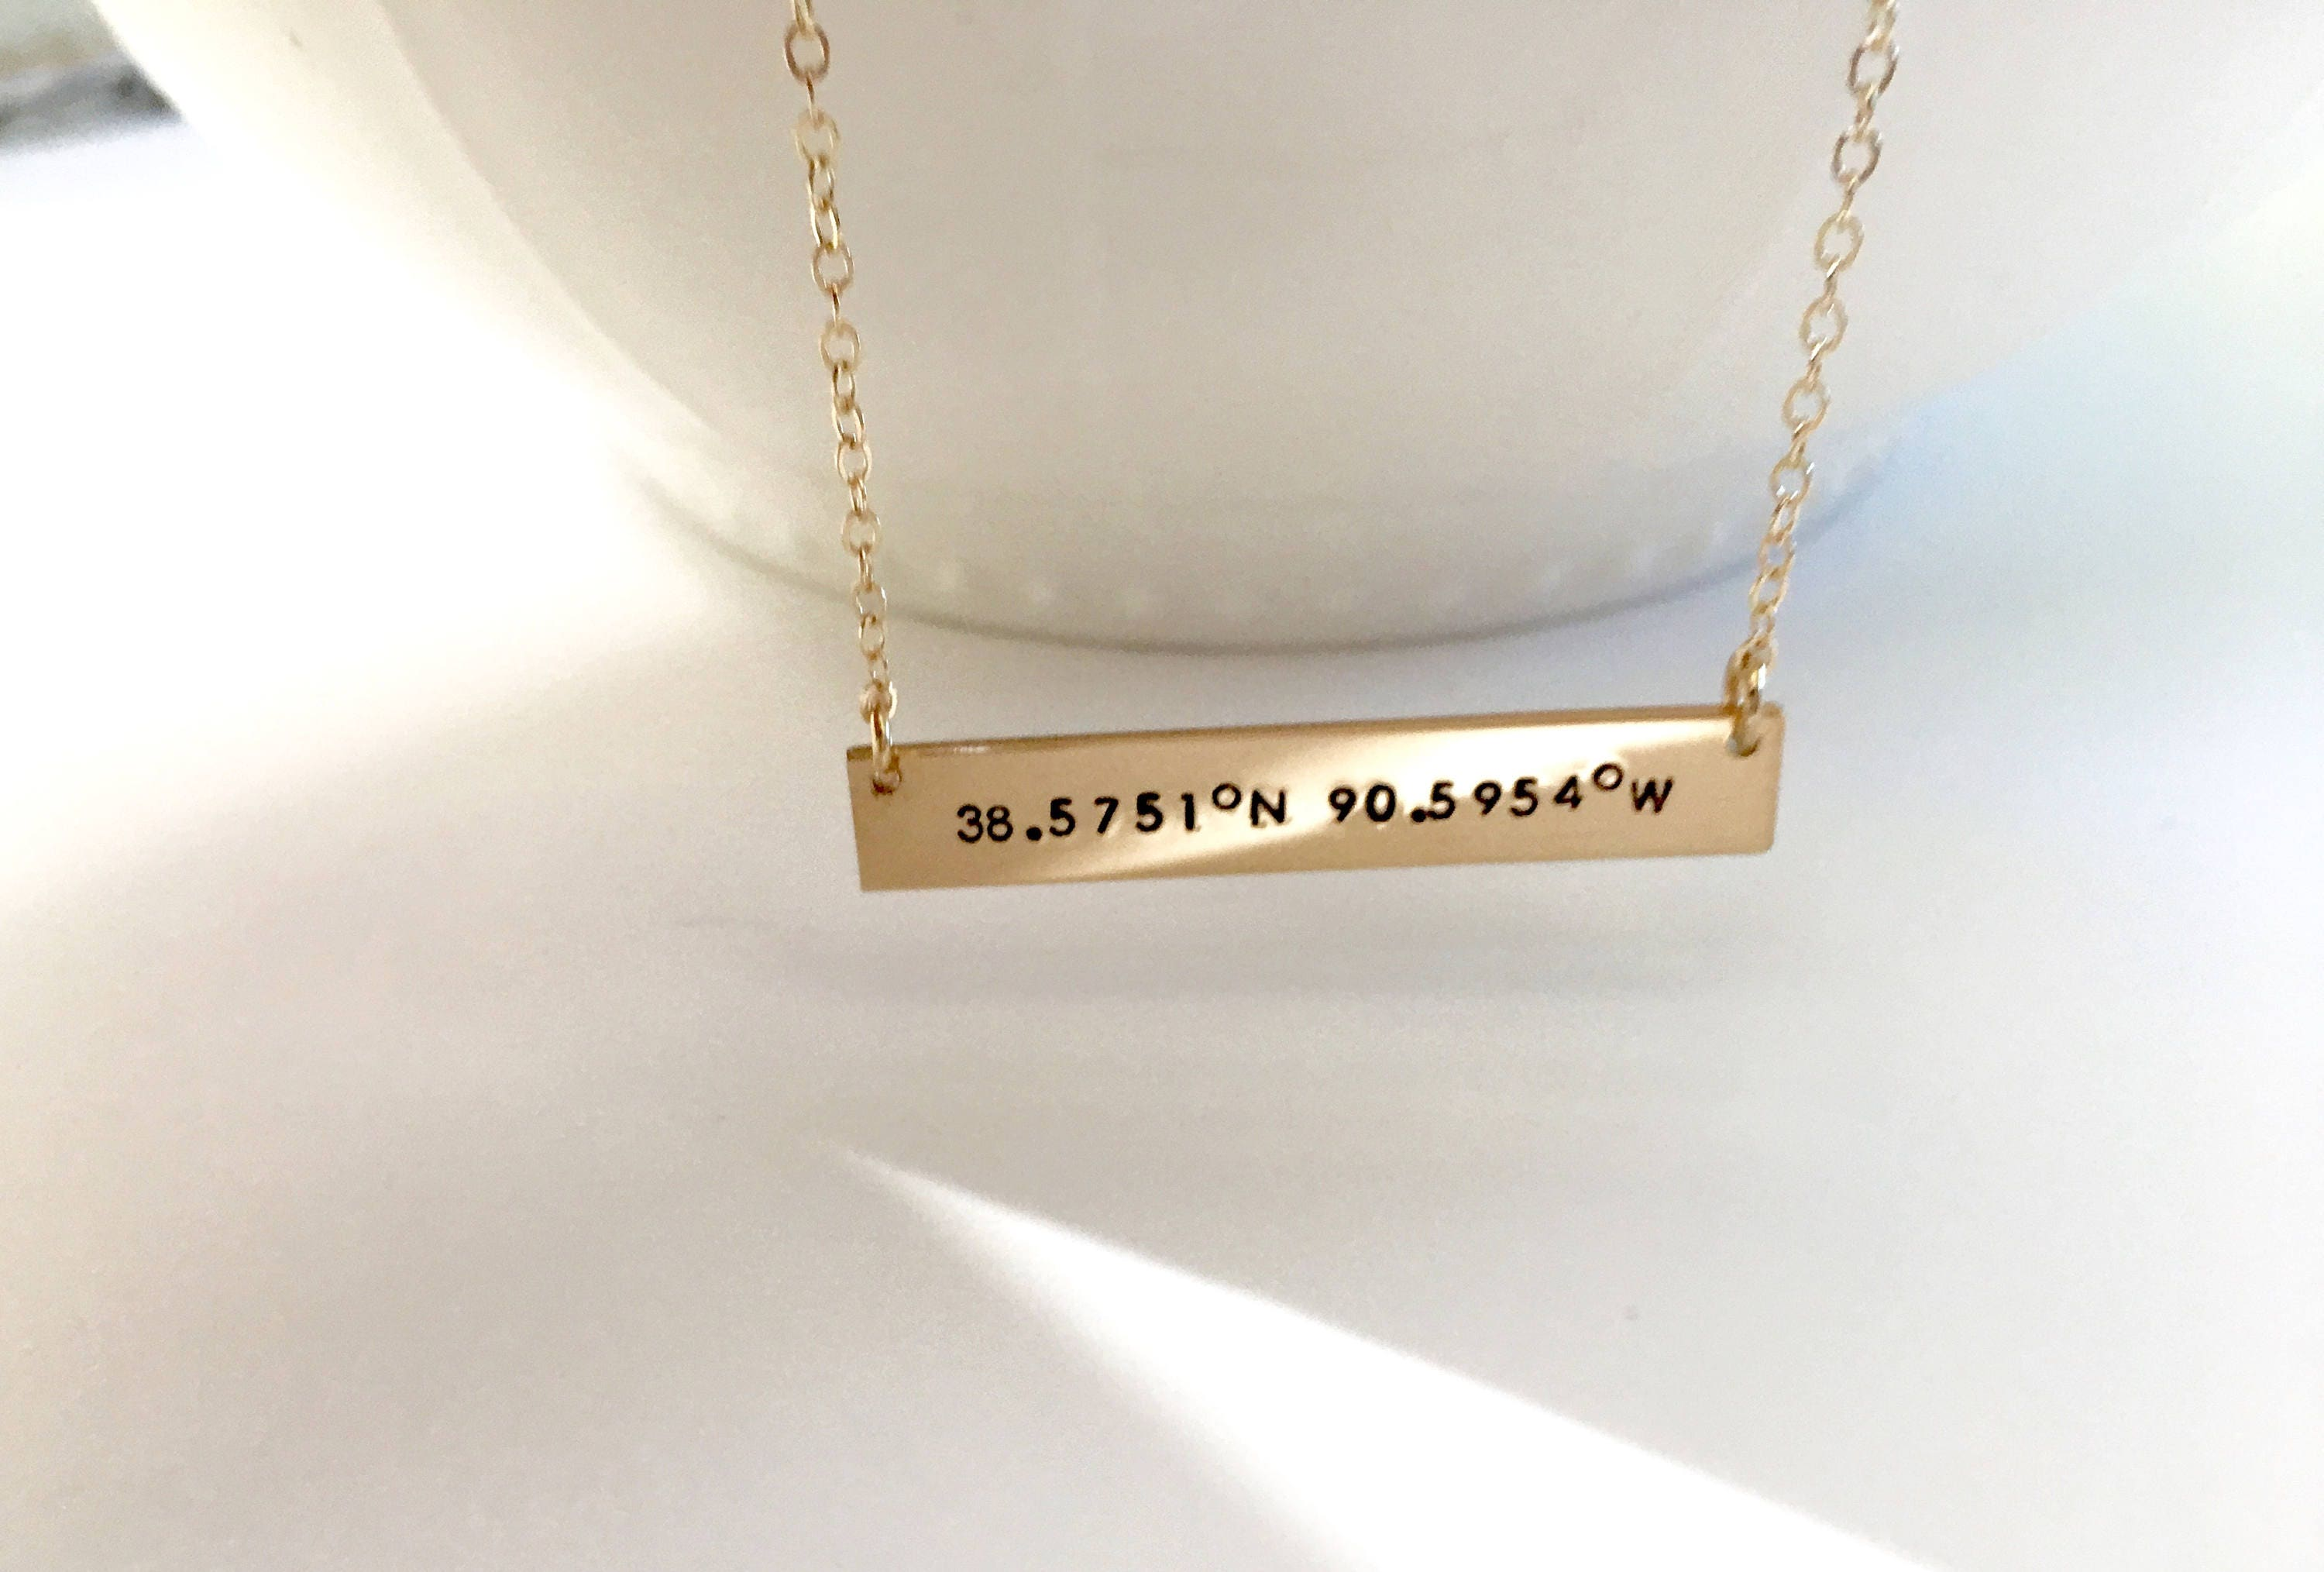 necklaces pendant necklace layering personalized coordinates custom coordinate handmade pin jewelry